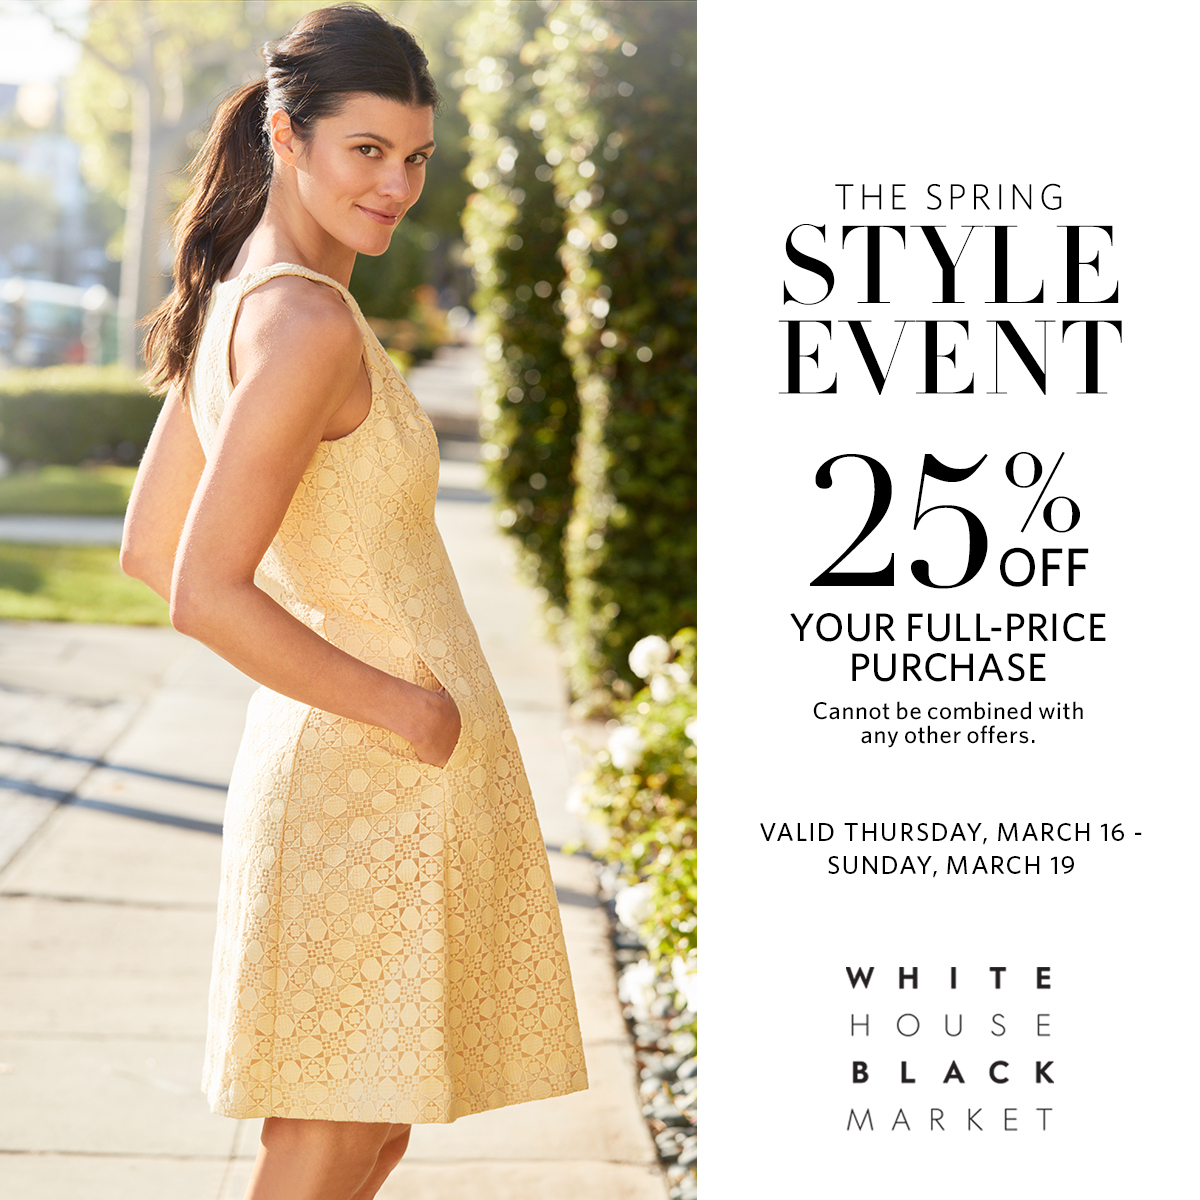 94685d55df White House Black Market Presents - The Spring Style Event! Enjoy 25% off  your full-price purchase. Cannot be combined with any other offers.